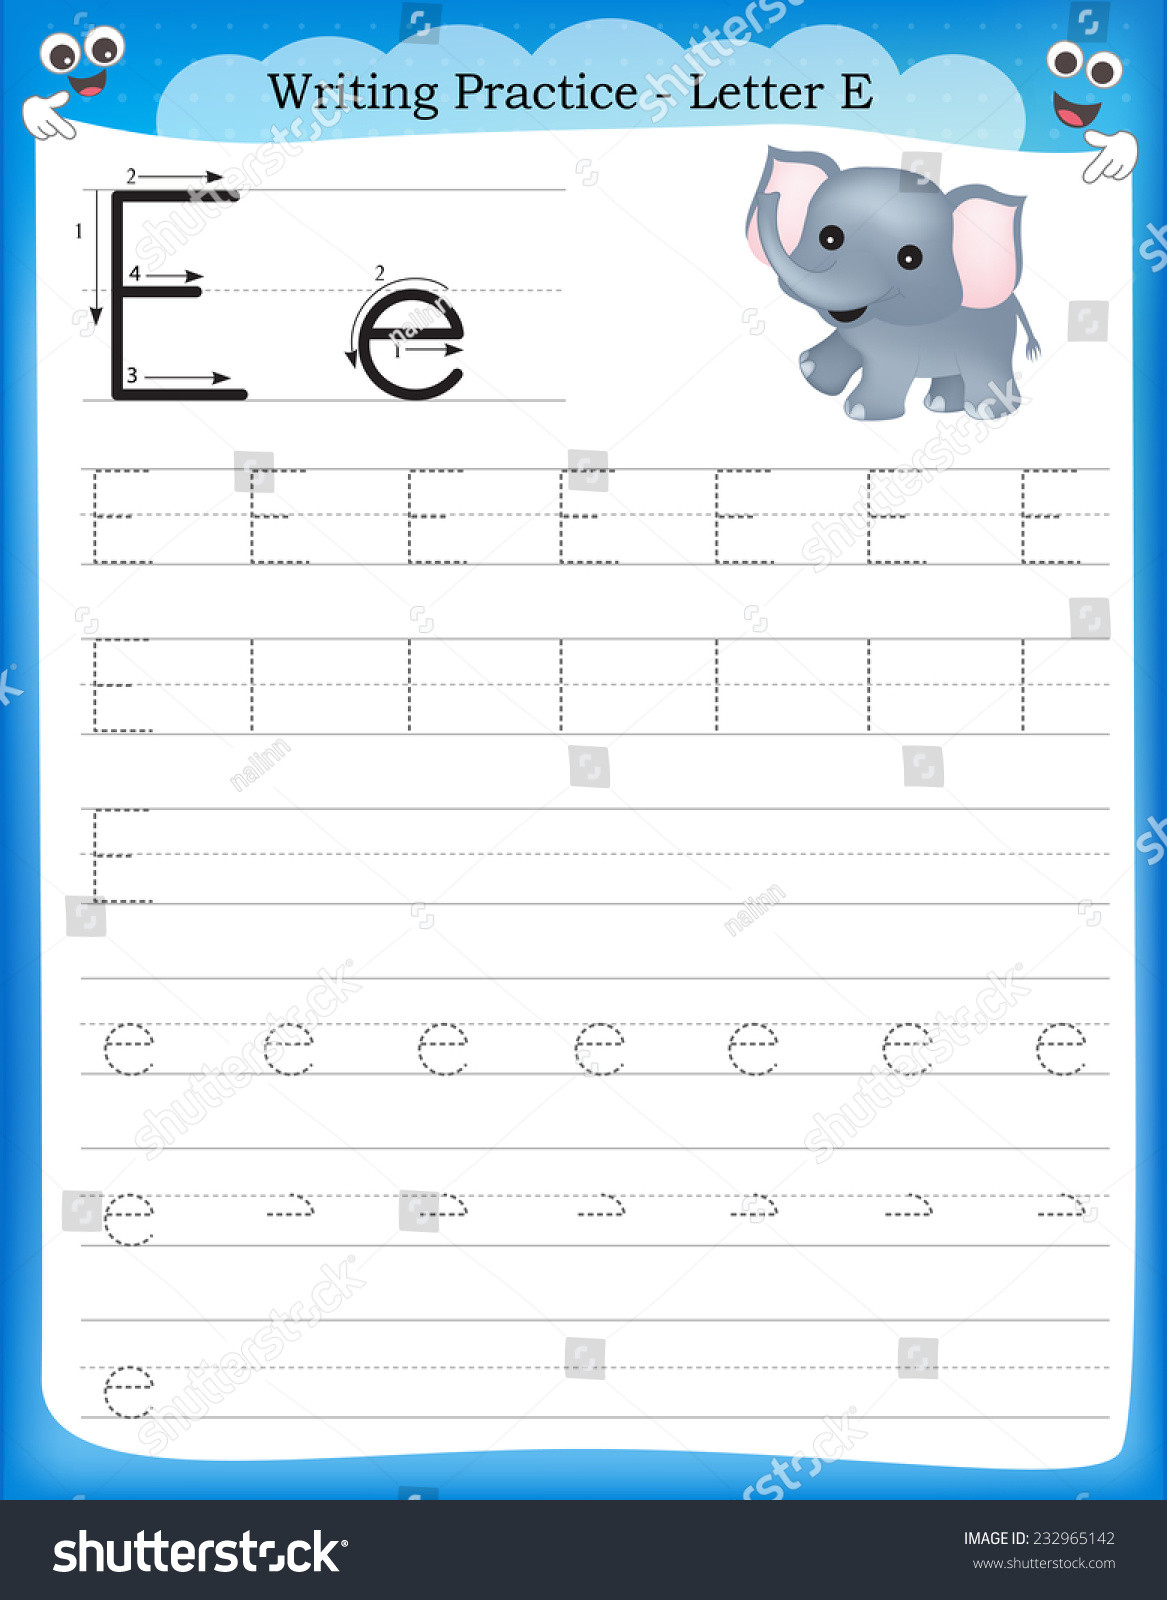 Writing practice letter E printable worksheet for preschool kindergarten kids to improve basic writing skills